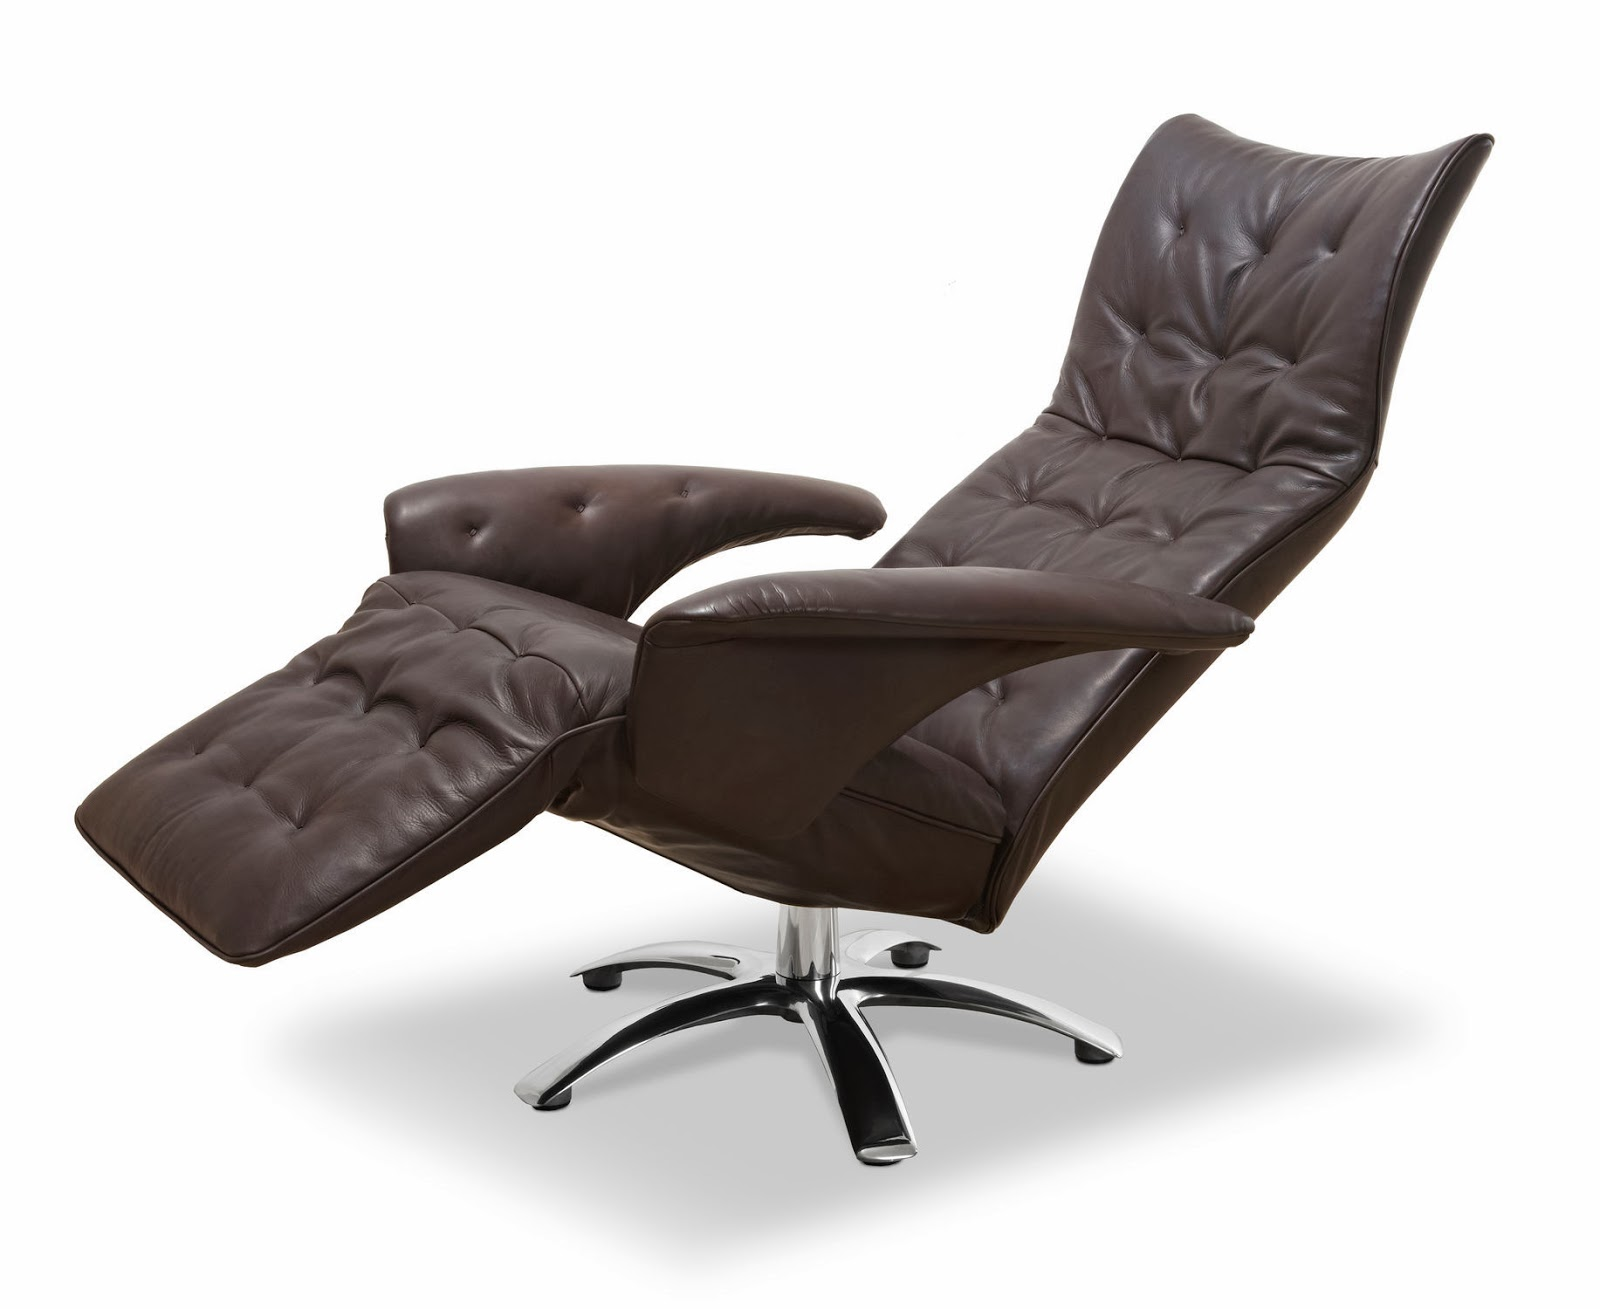 fauteuil inclinable en cuir moderne